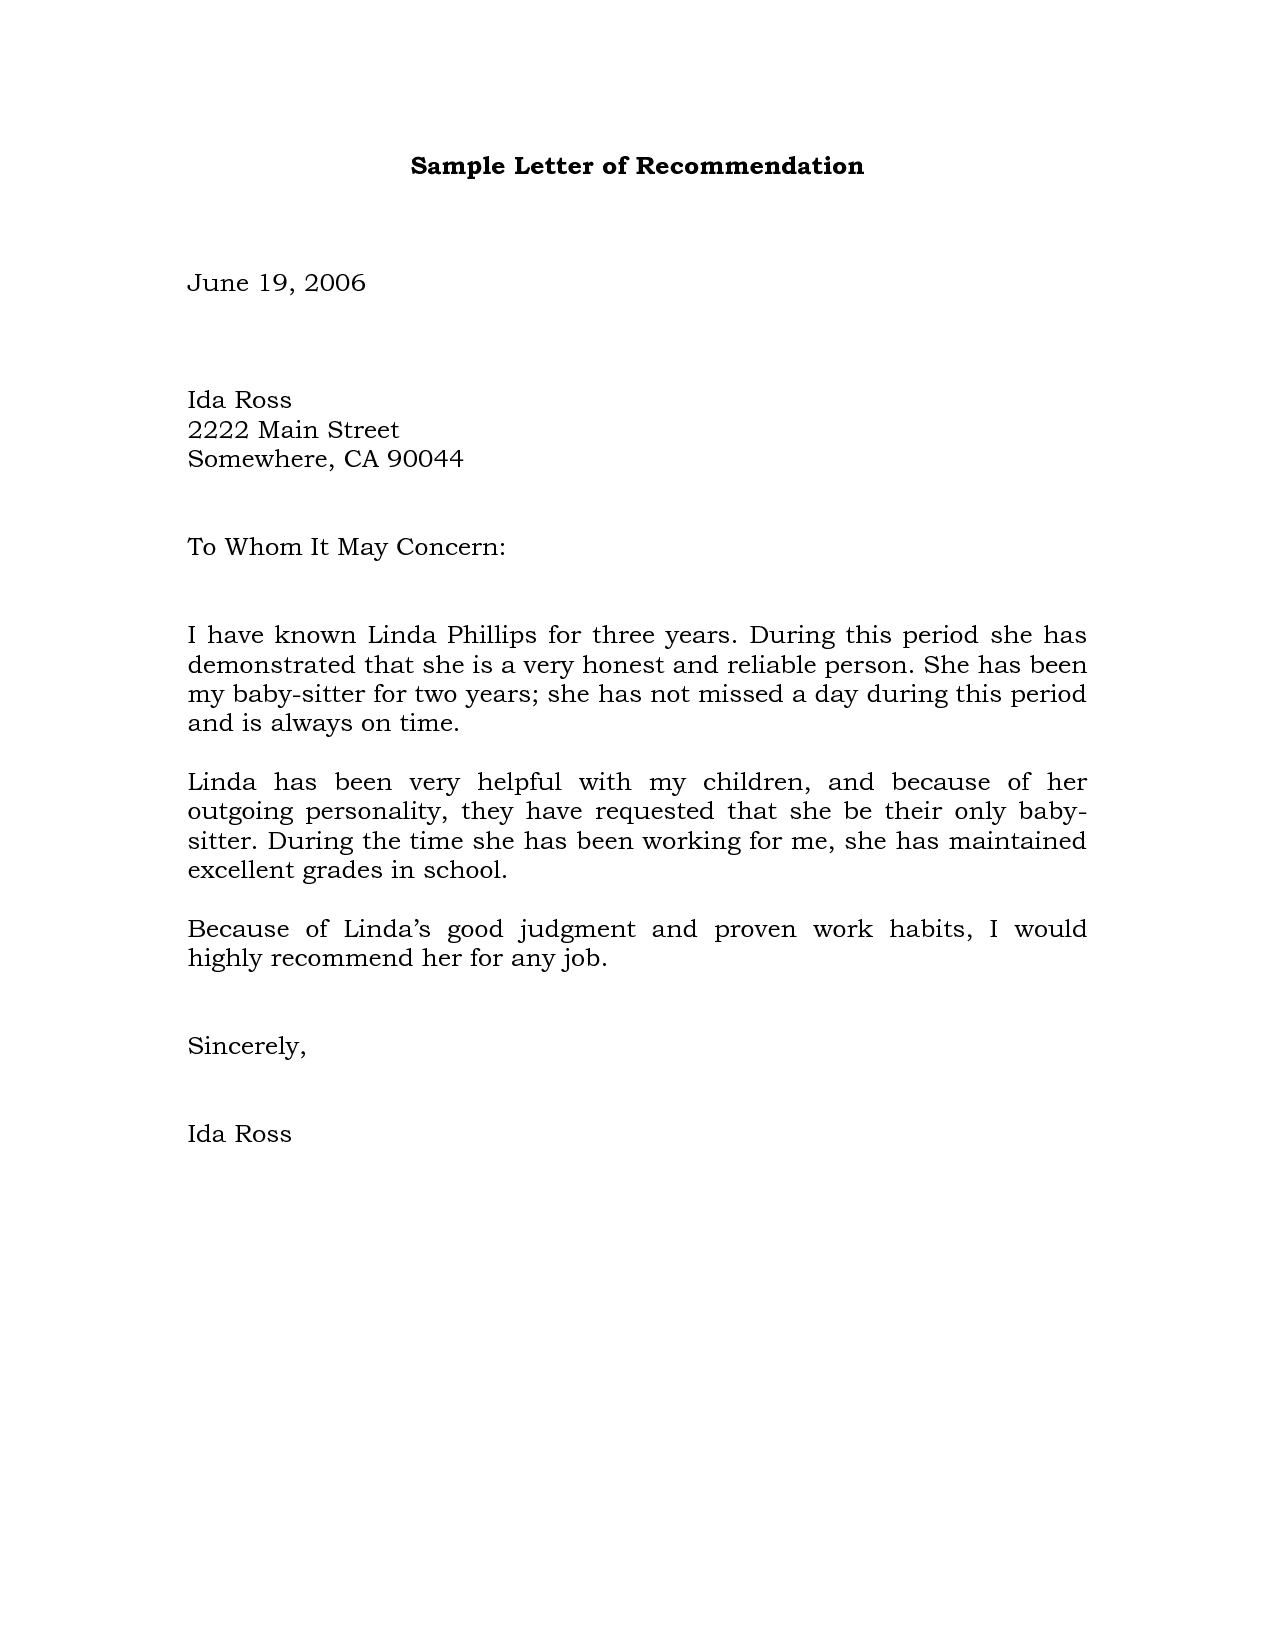 Reference Letter Template Word Document - Sample Re Mendation Letter Example Projects to Try